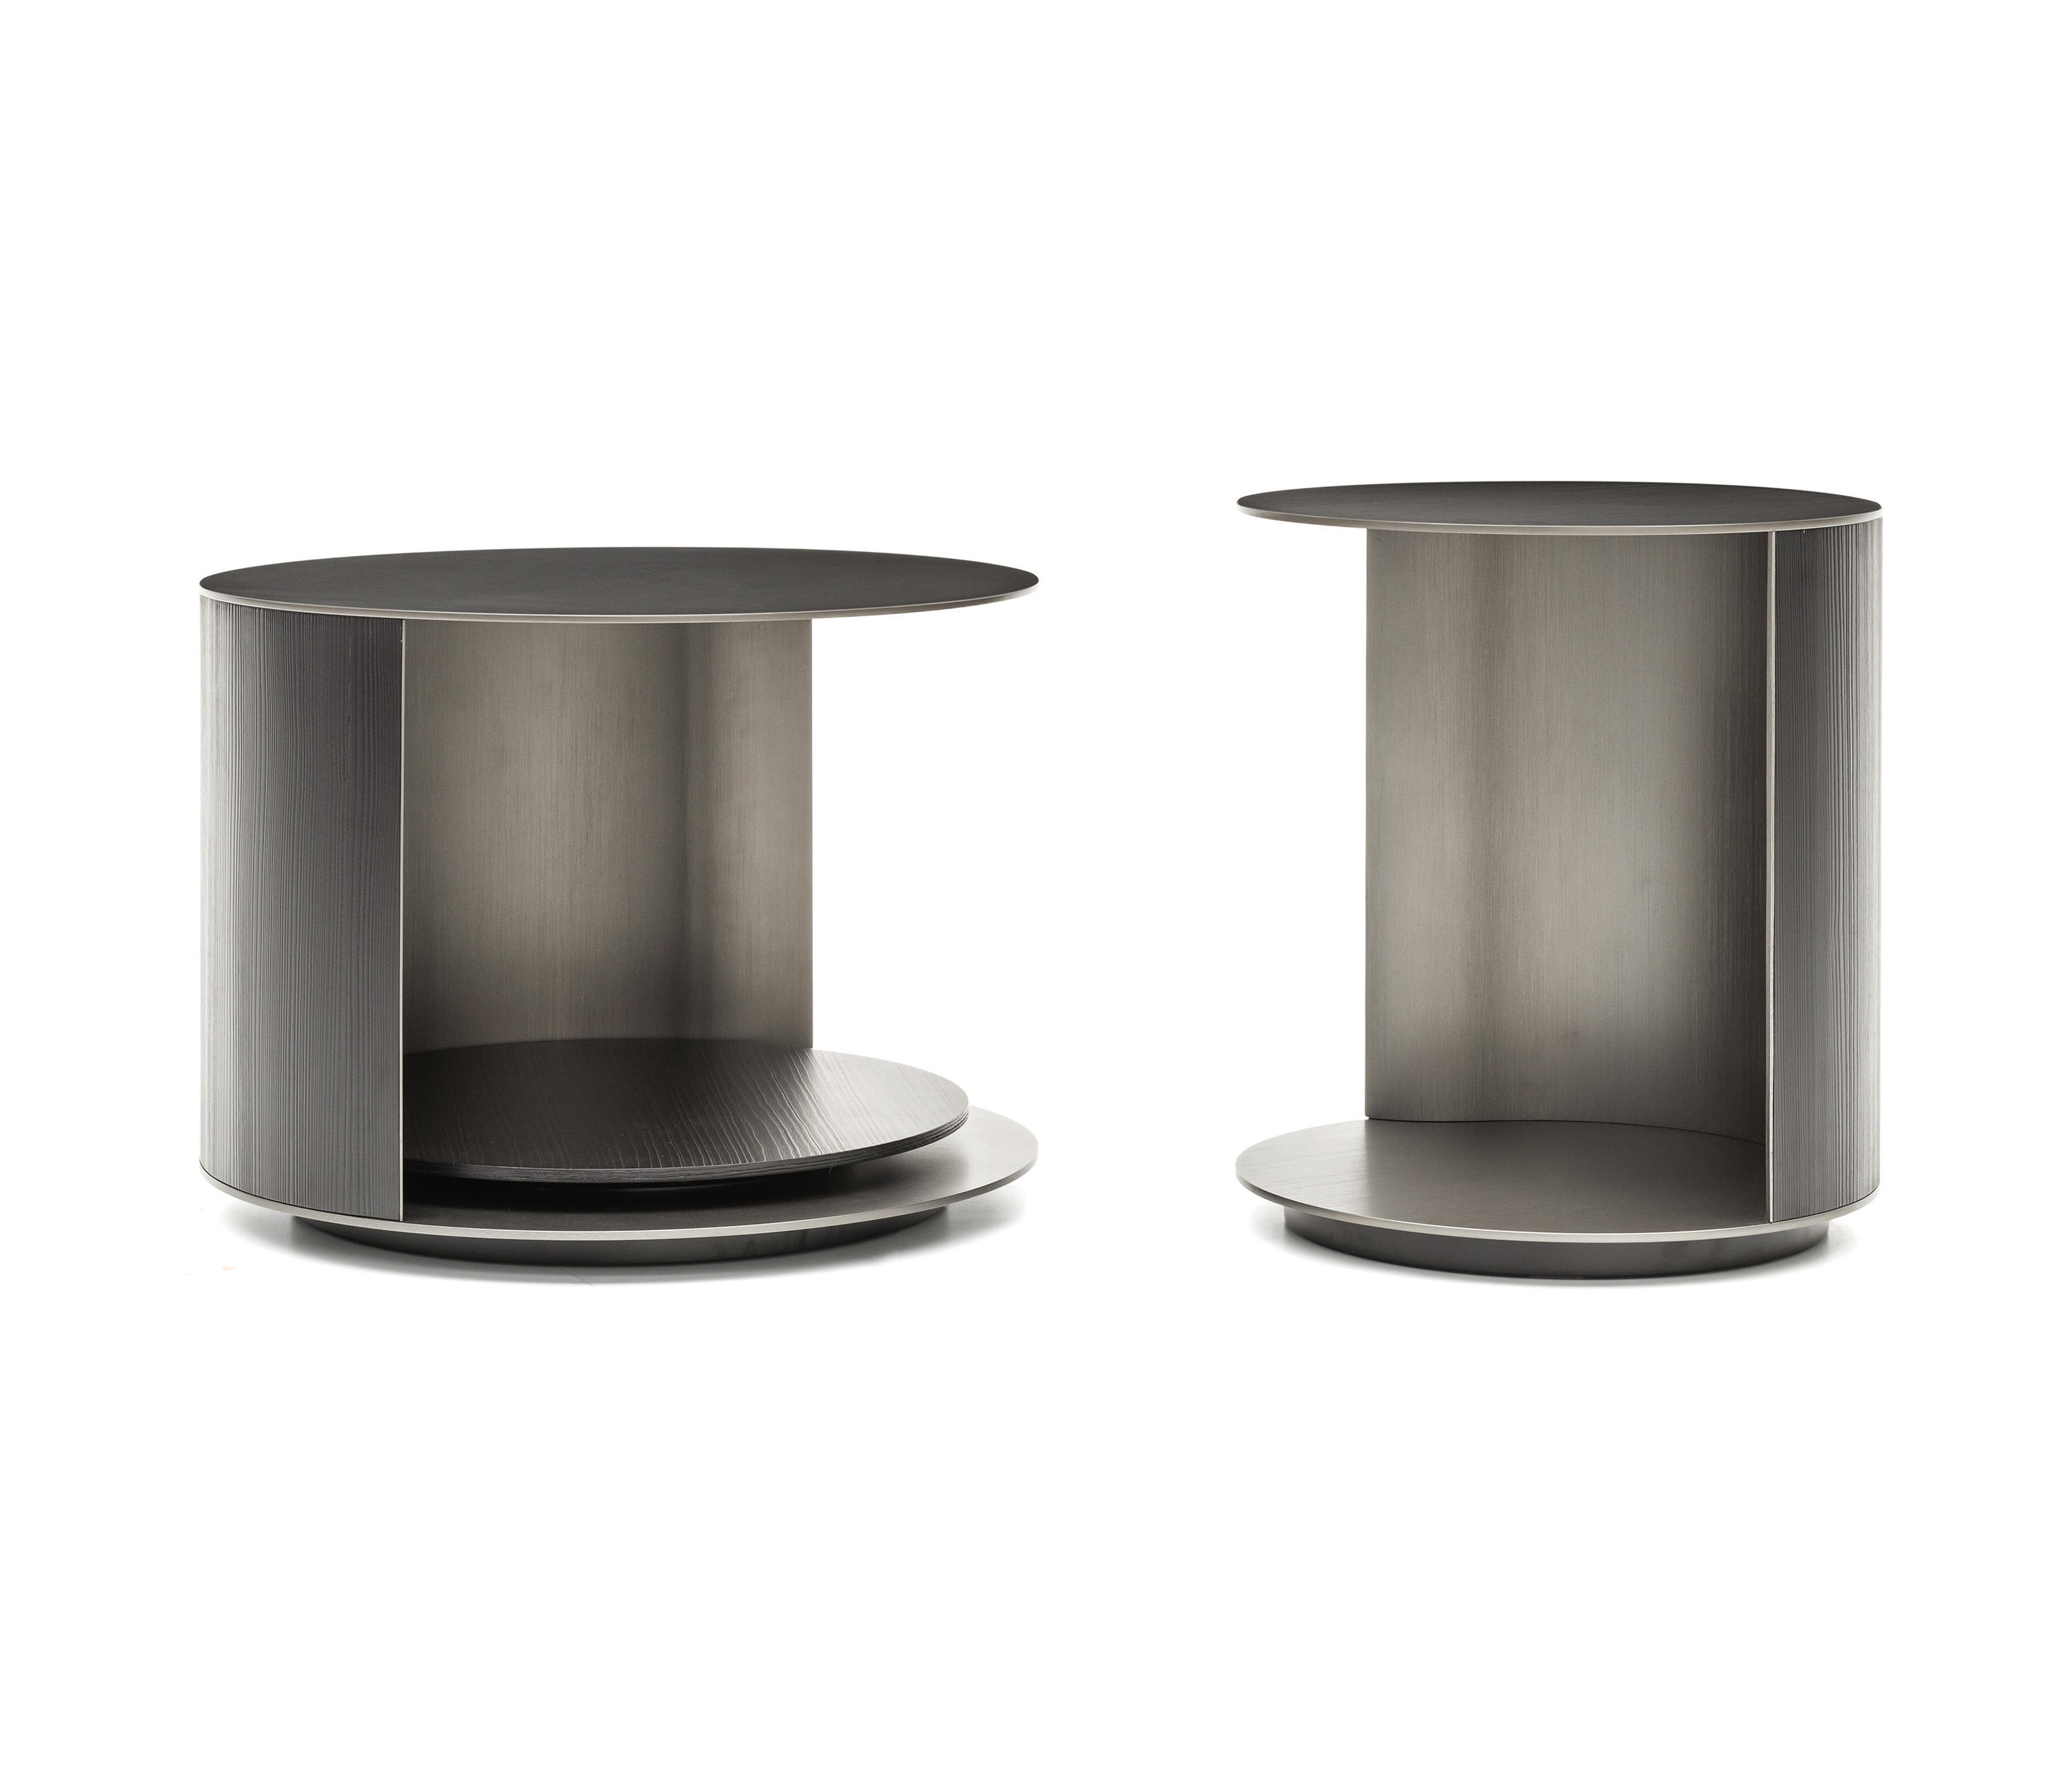 Richer Side Table by Minotti